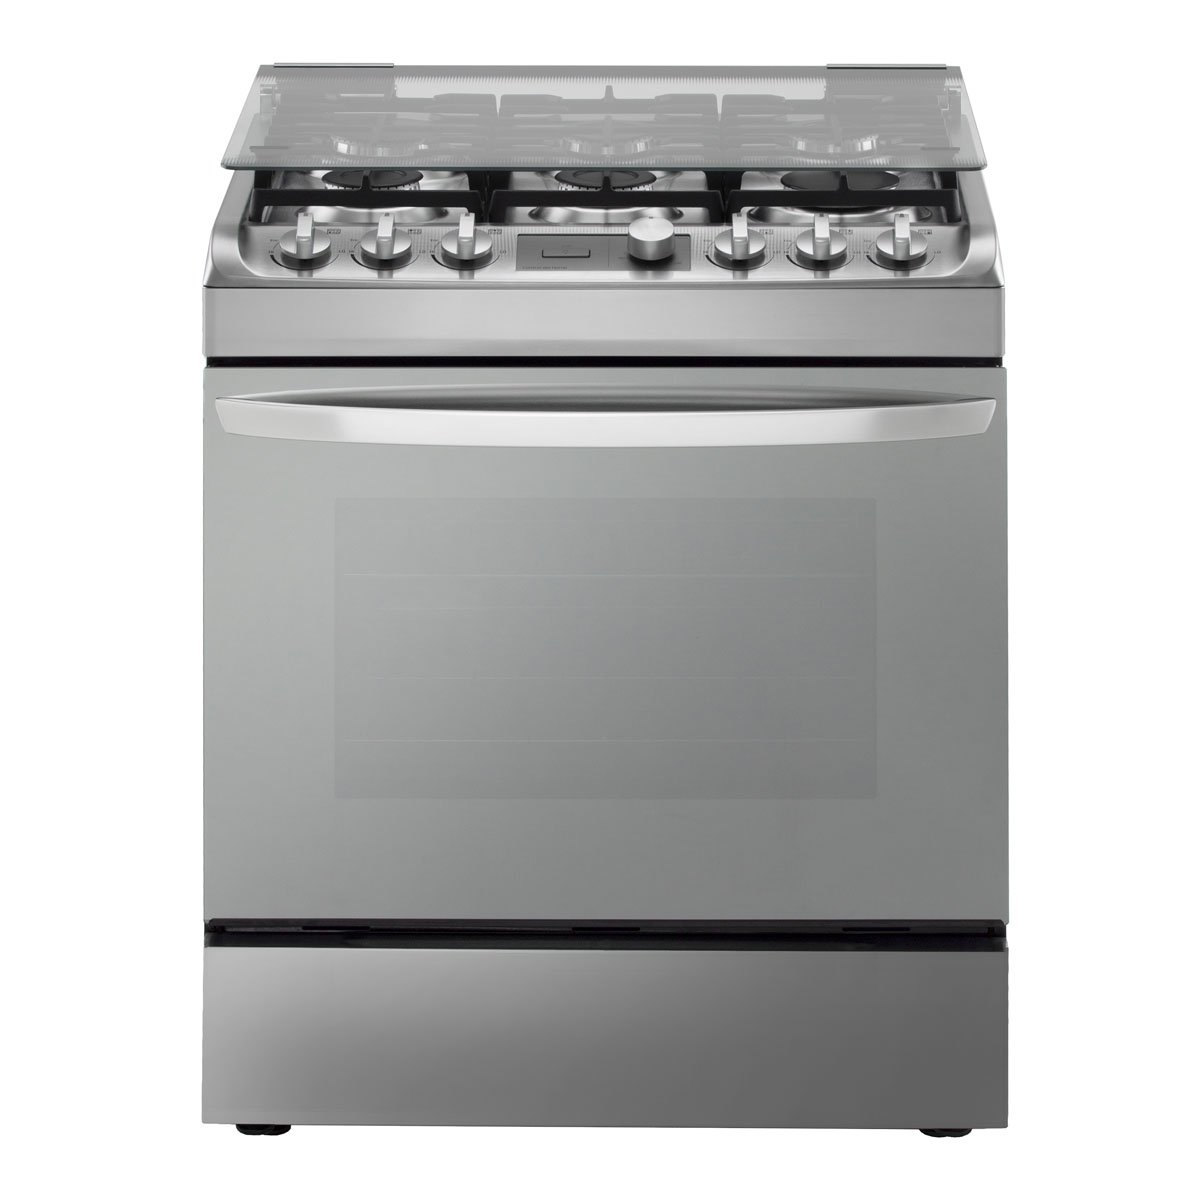 Estufa good lg 30 sears com mx me entiende for Estufas con horno economicas